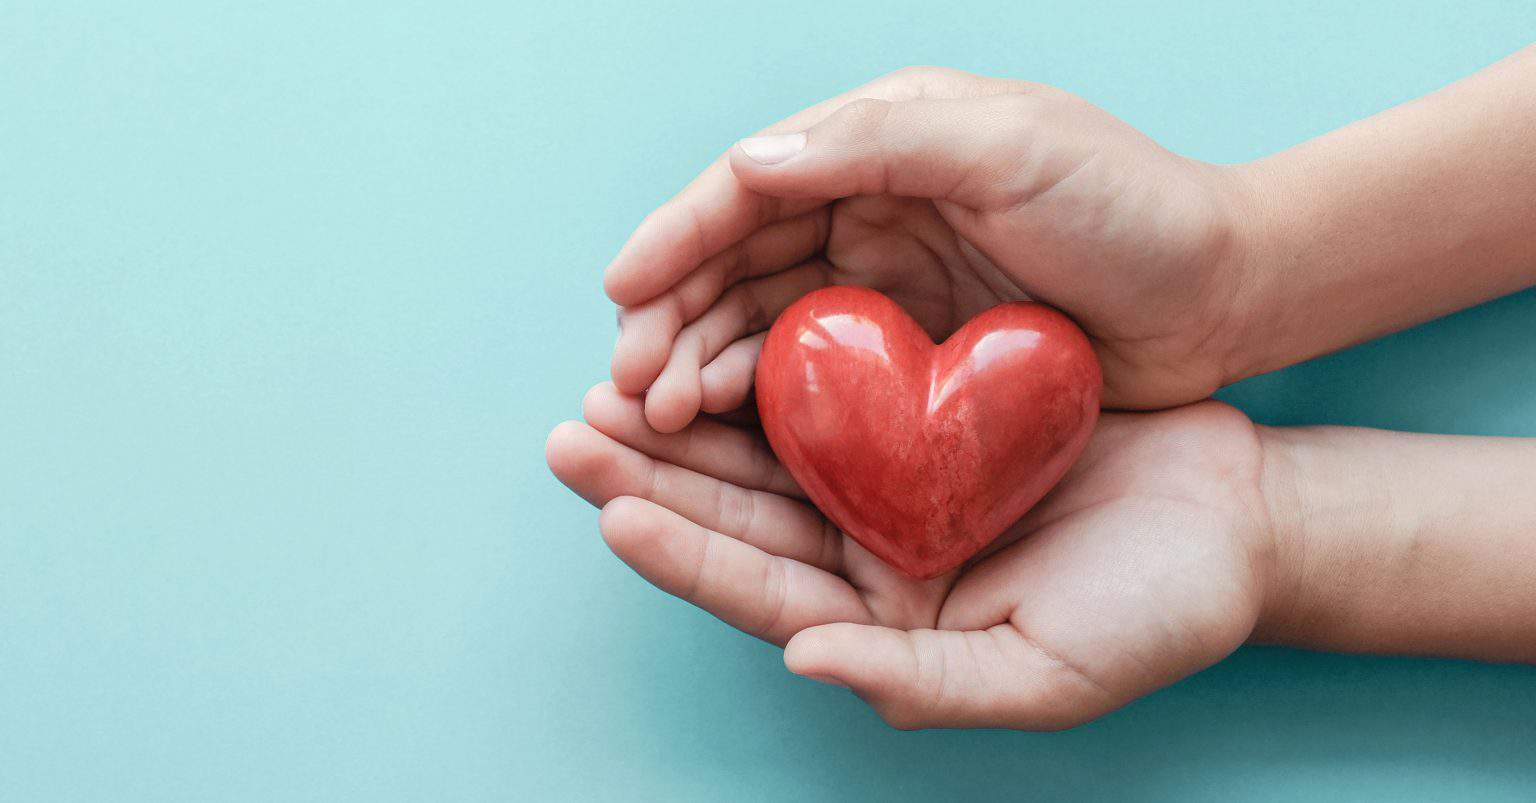 giving a gift to charity in your will can help you leave a lasting legacy